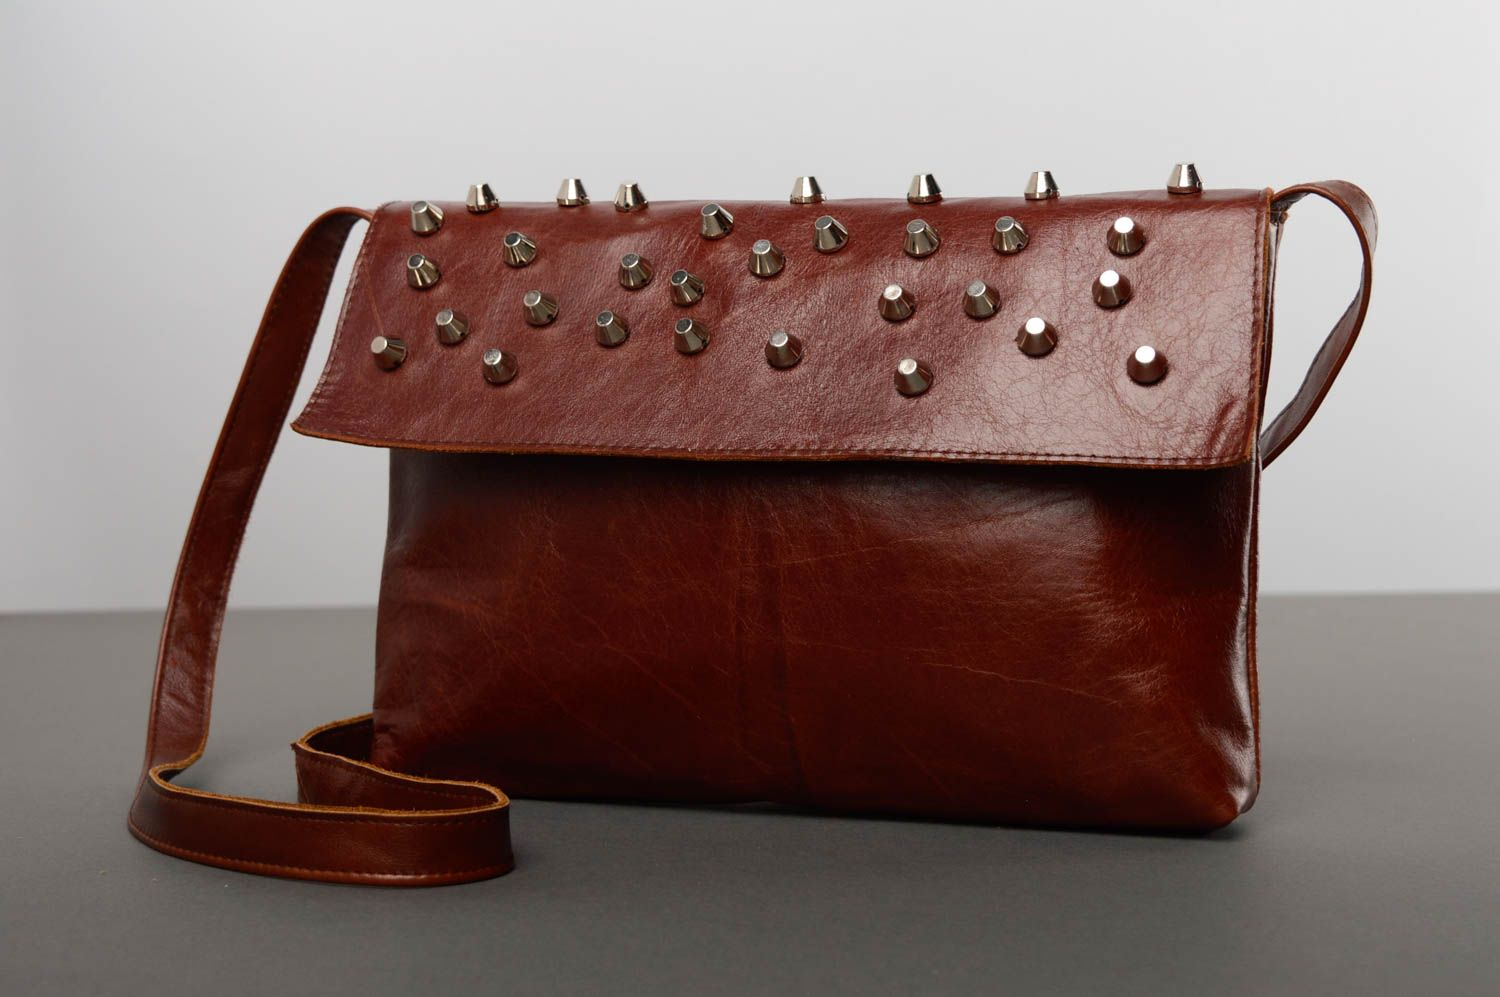 women's handbags Unusual leather bag with studs - MADEheart.com